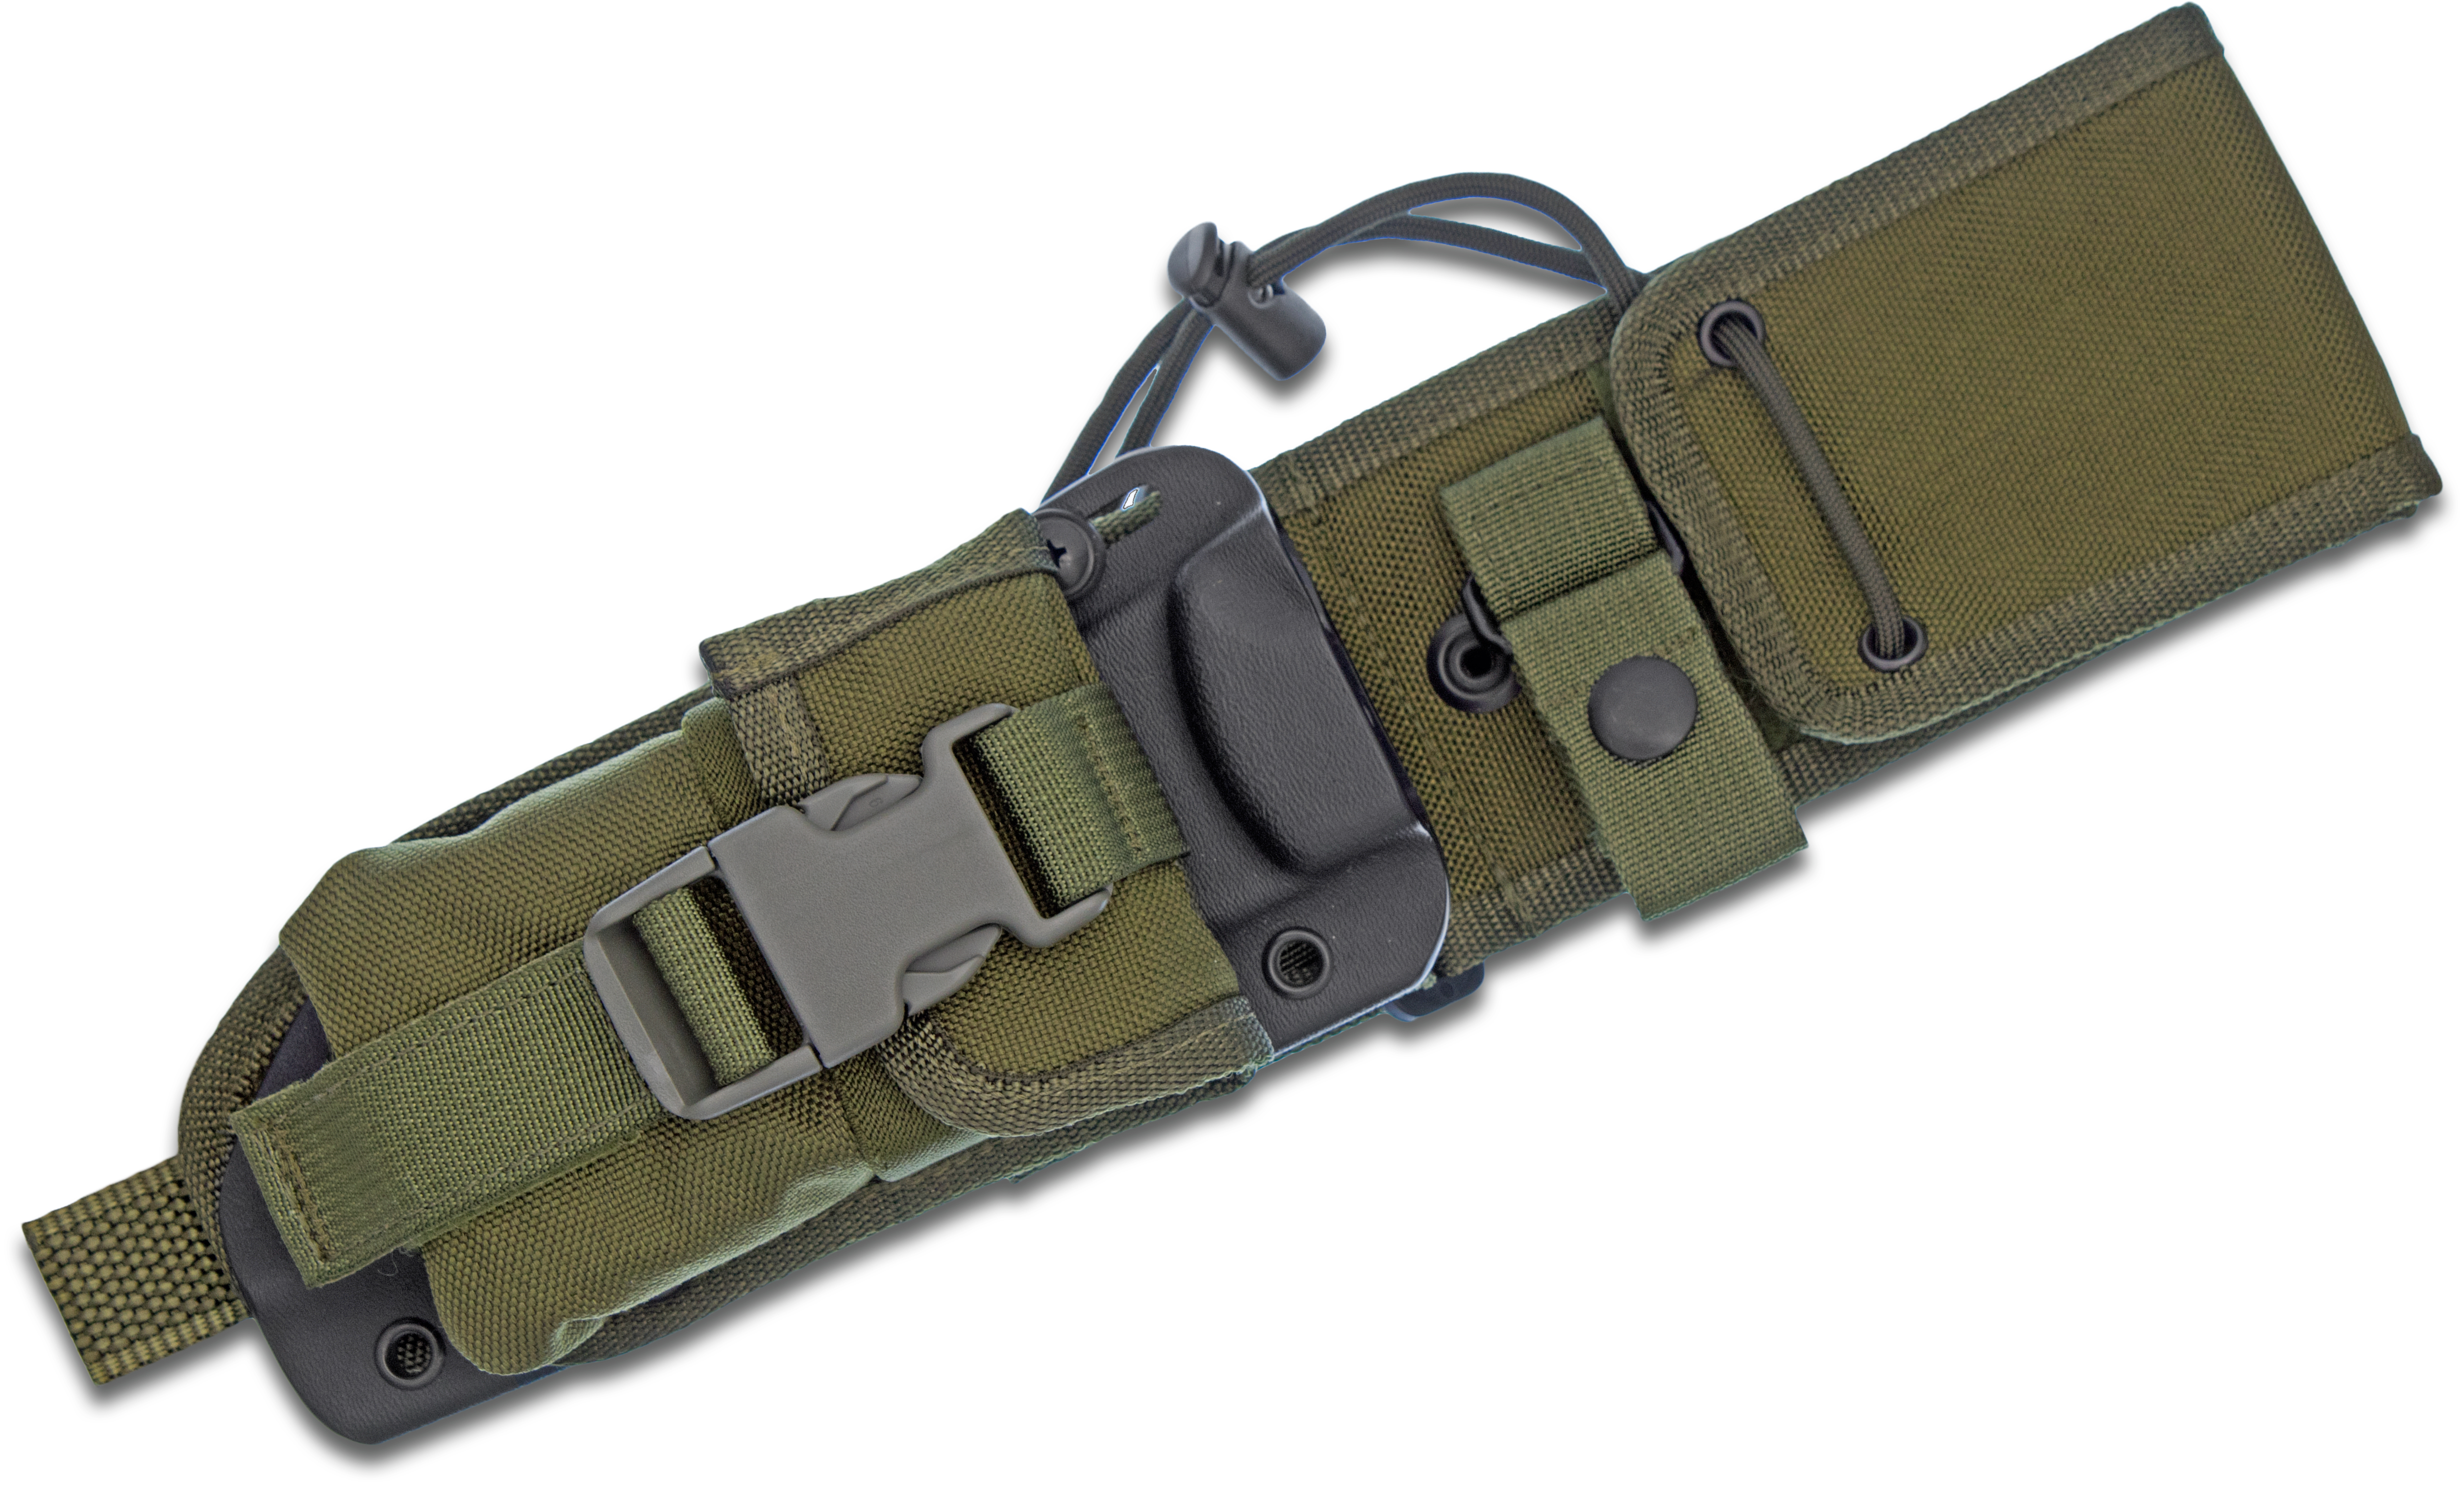 ESEE Knives ESEE-6-MBSP-OD MOLLE Back, Molded Sheath and Pouch Combo, OD Green, Assembled